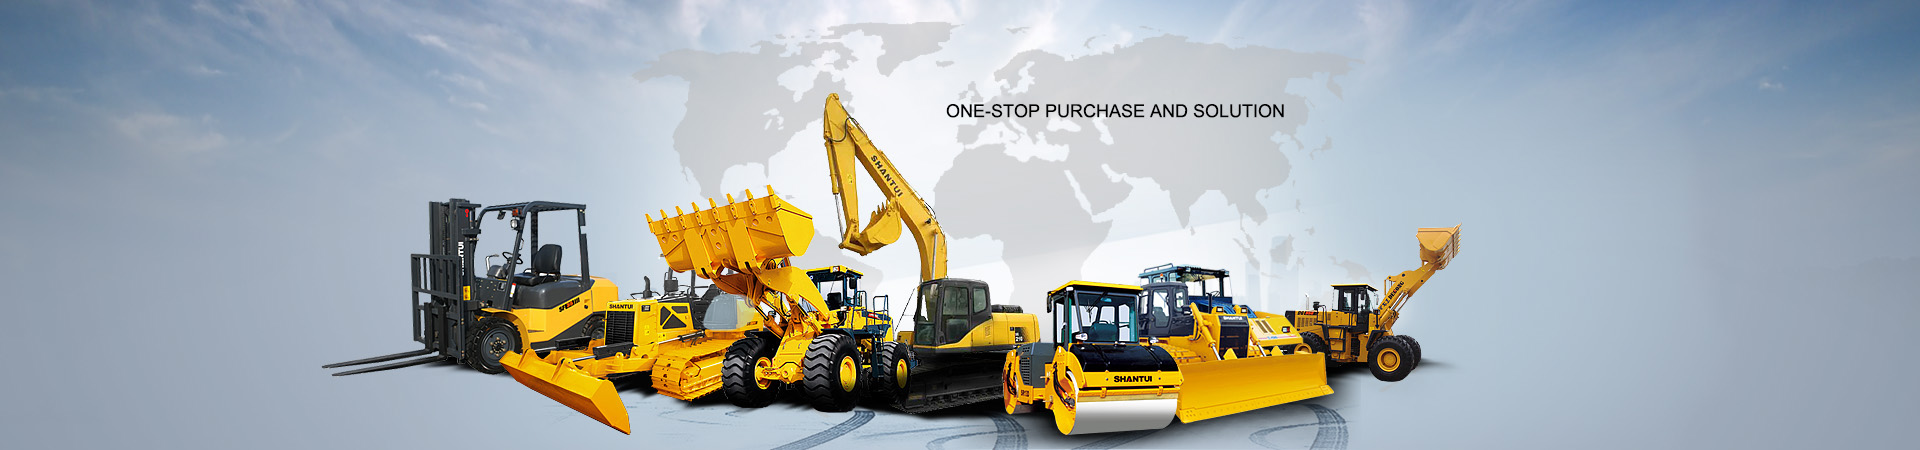 Construction Equipment Banners Professional Education Banners